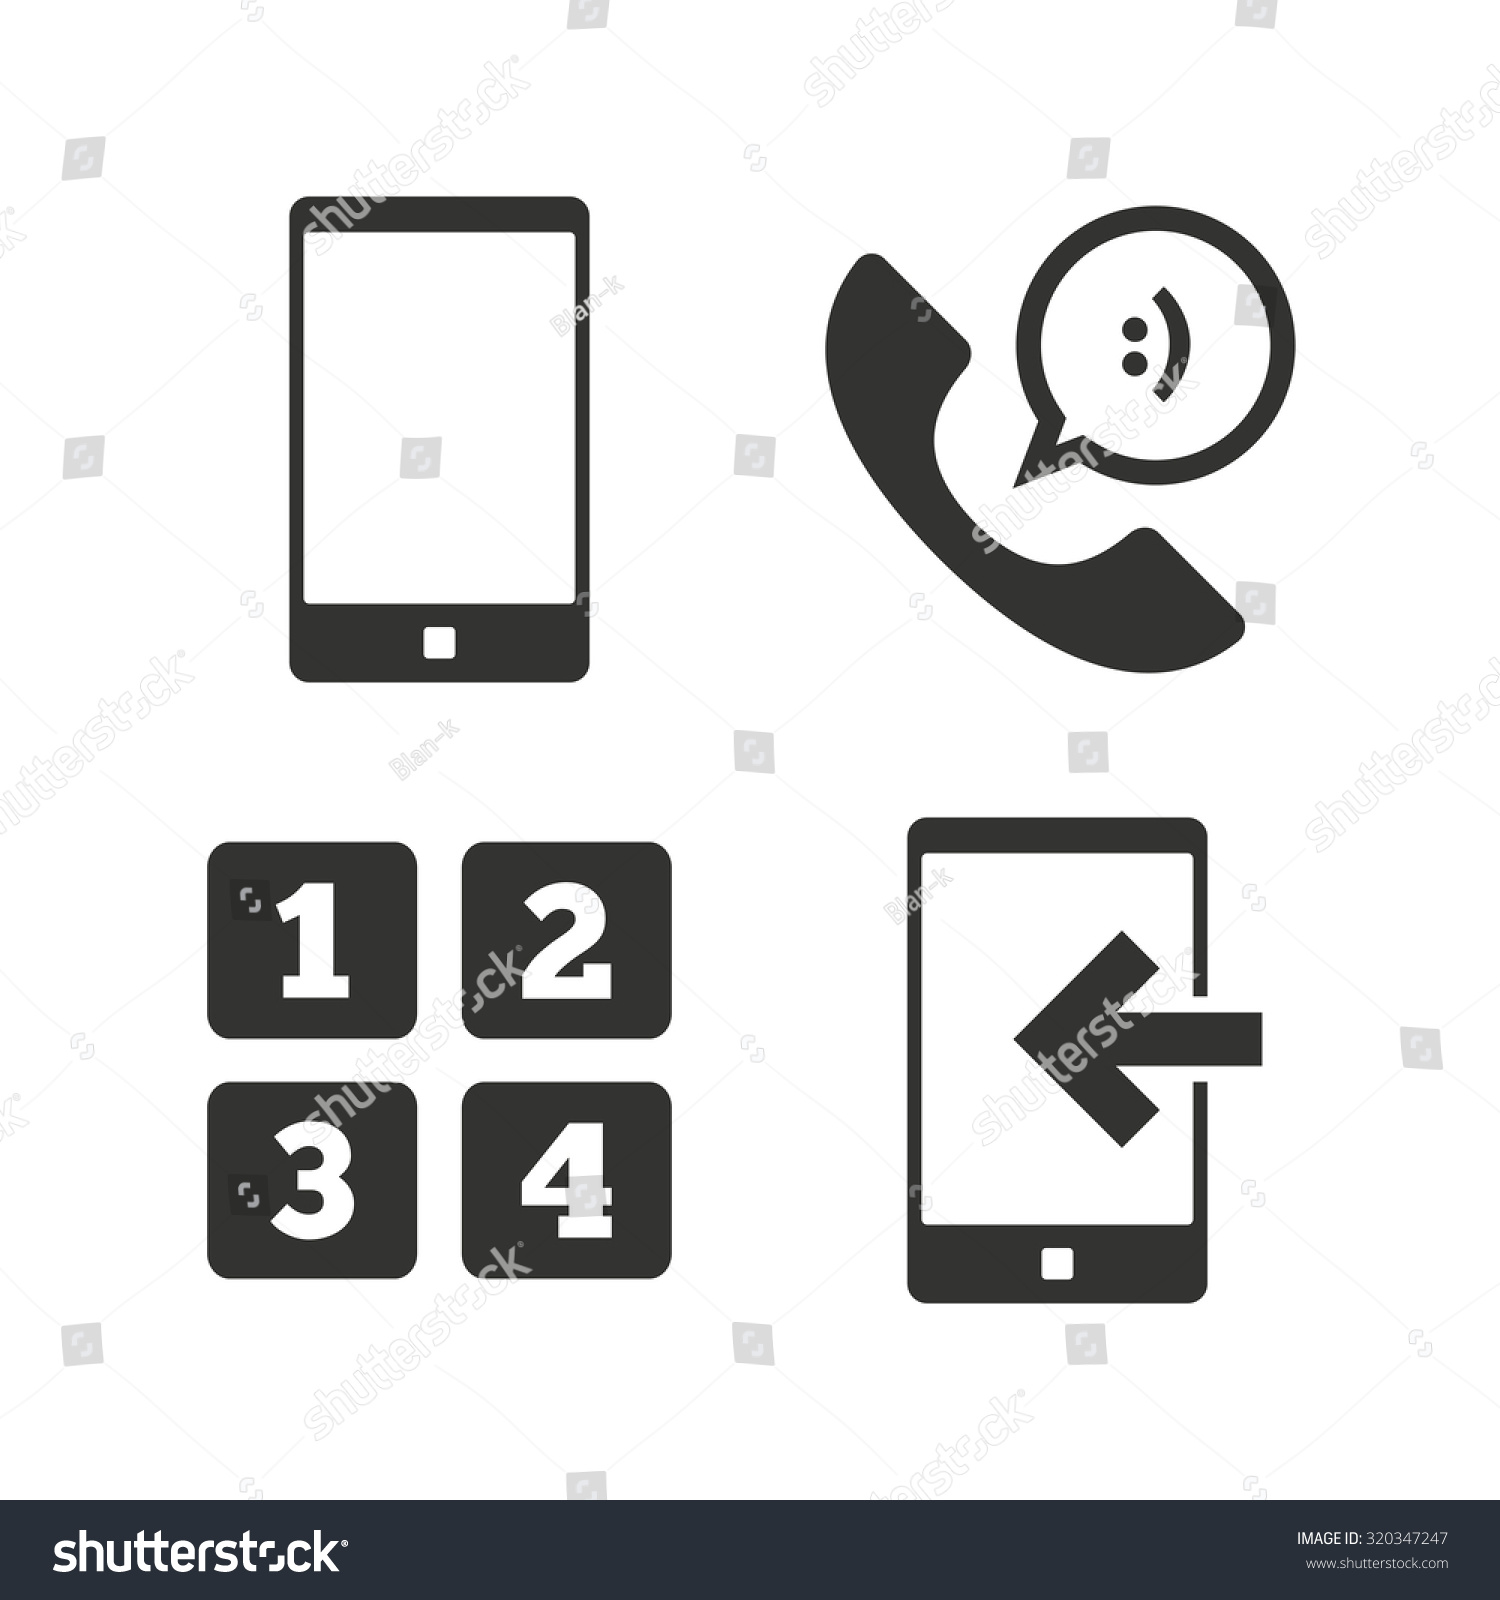 Phone icons smartphone incoming call sign stock vector 320347247 phone icons smartphone incoming call sign call center support symbol cellphone keyboard symbol biocorpaavc Images